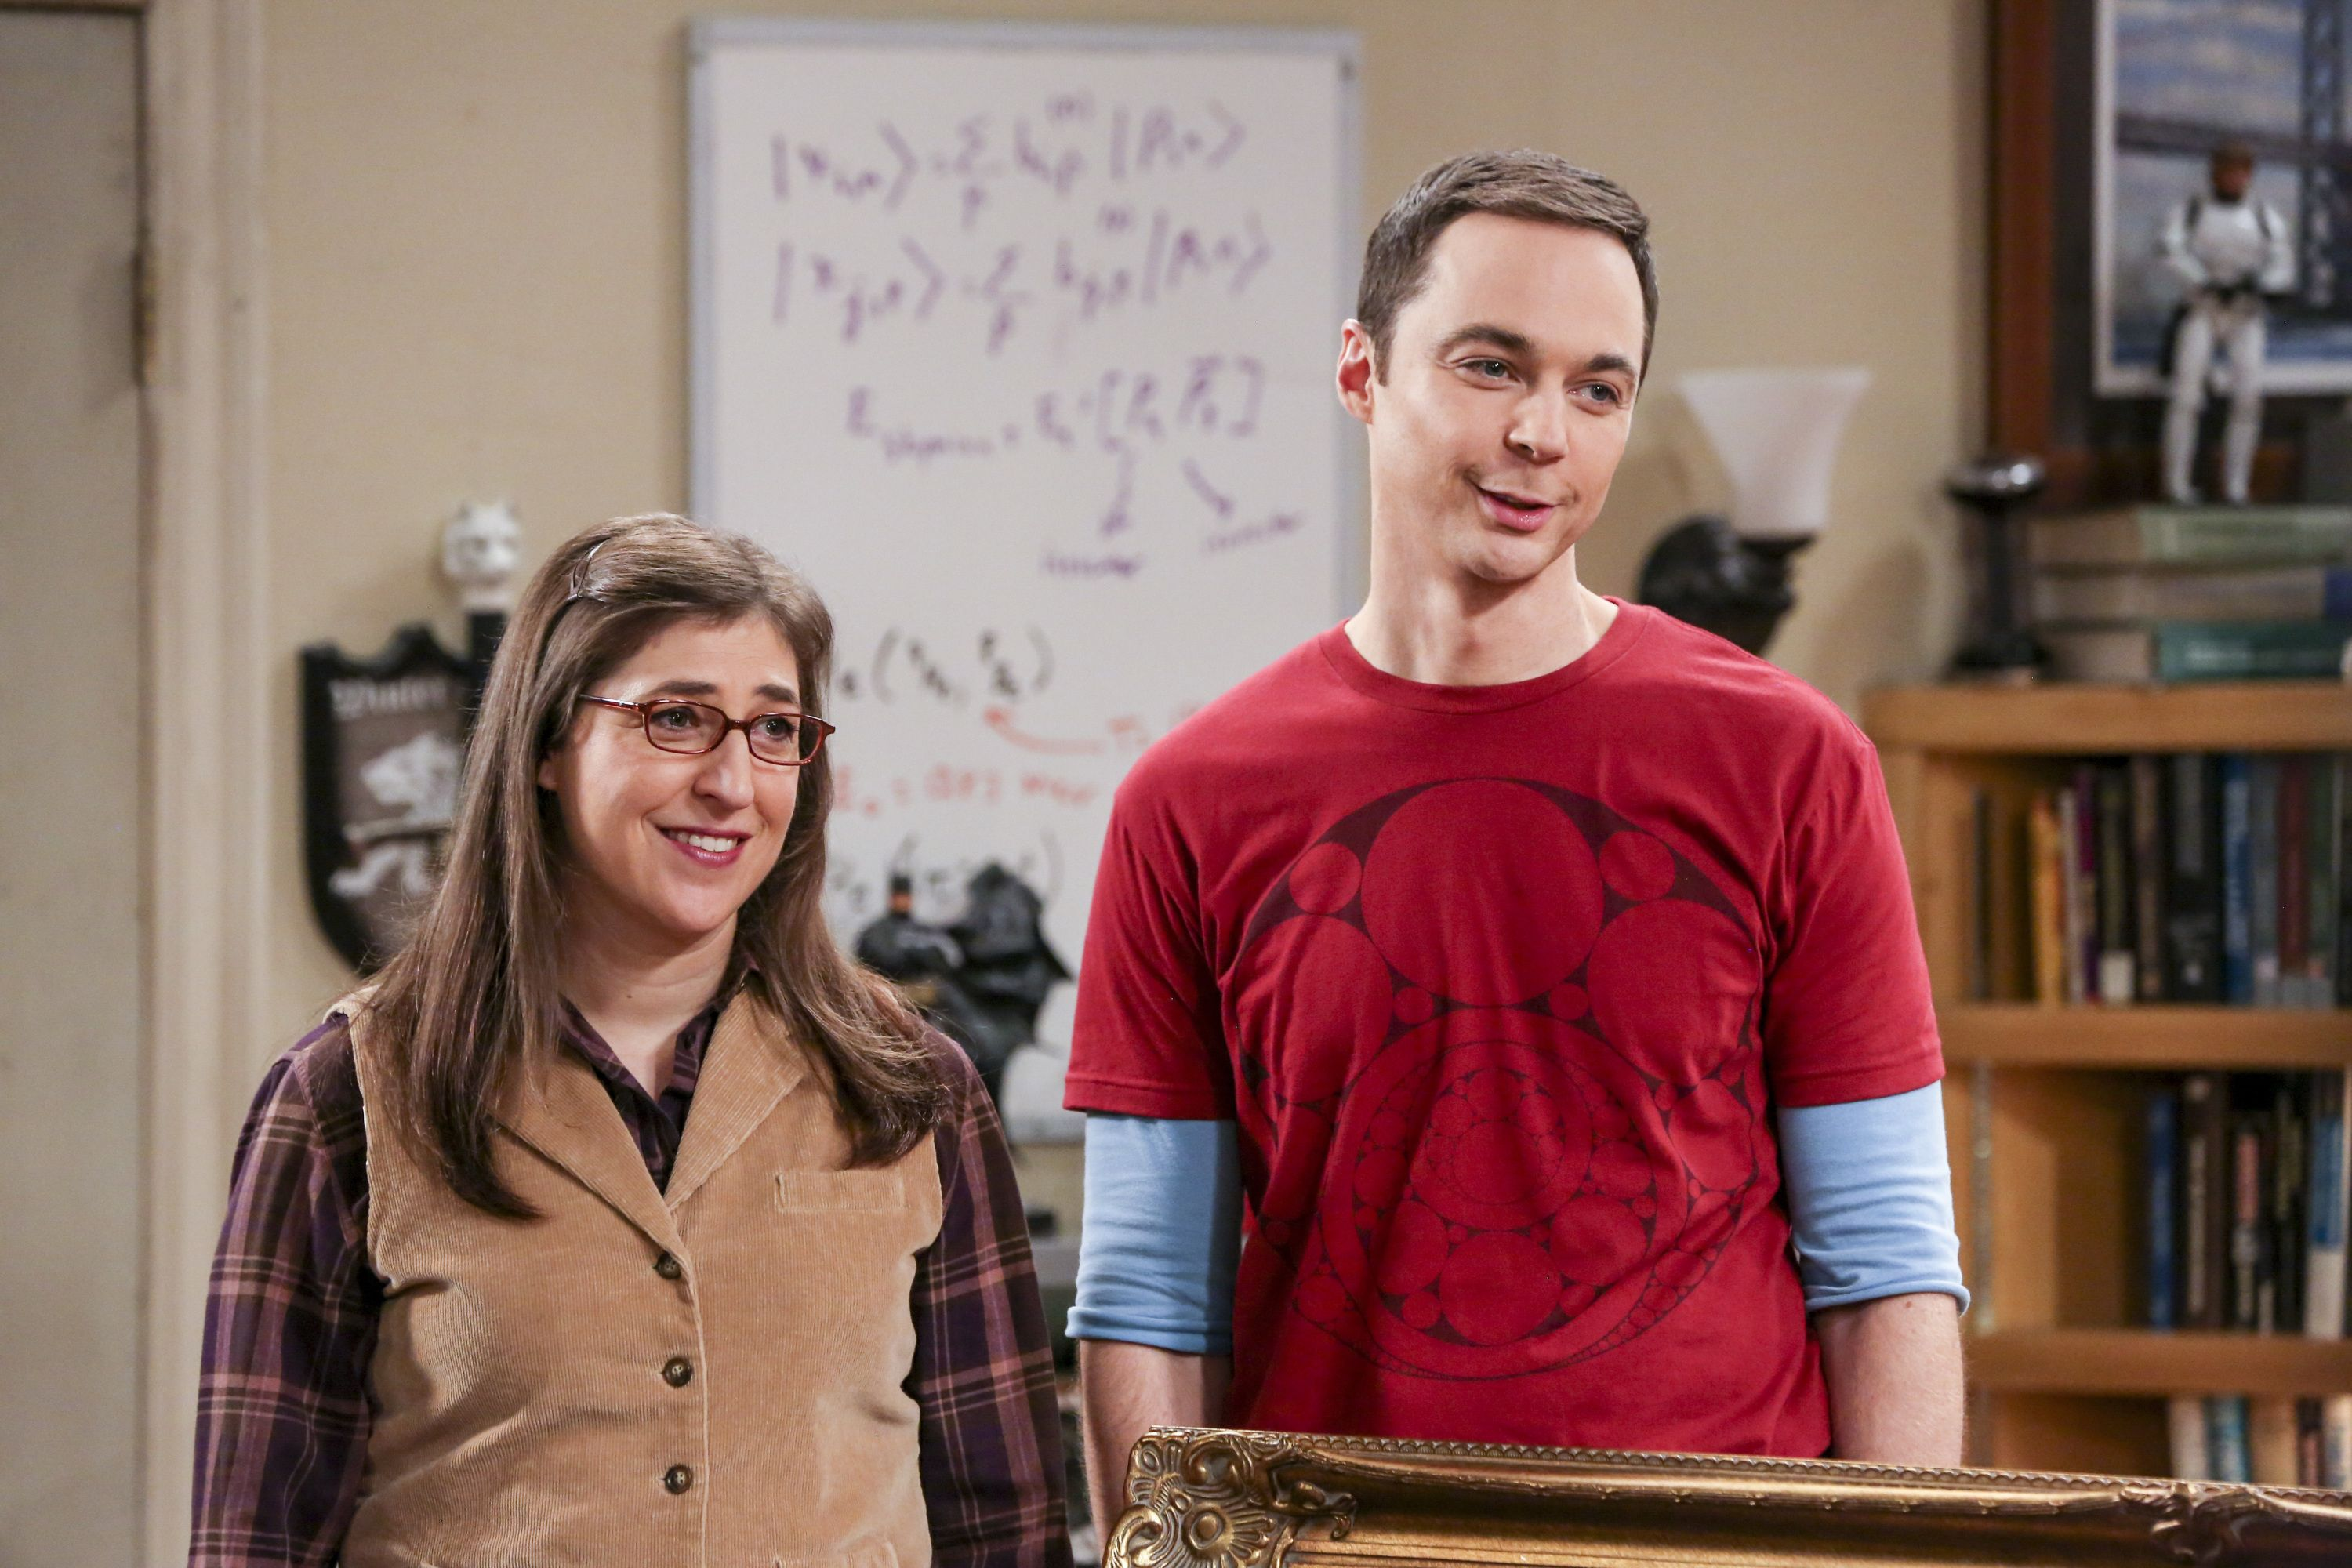 The Big Bang Theory's Sheldon and Amy stars are reuniting for a new show, but there's a twist